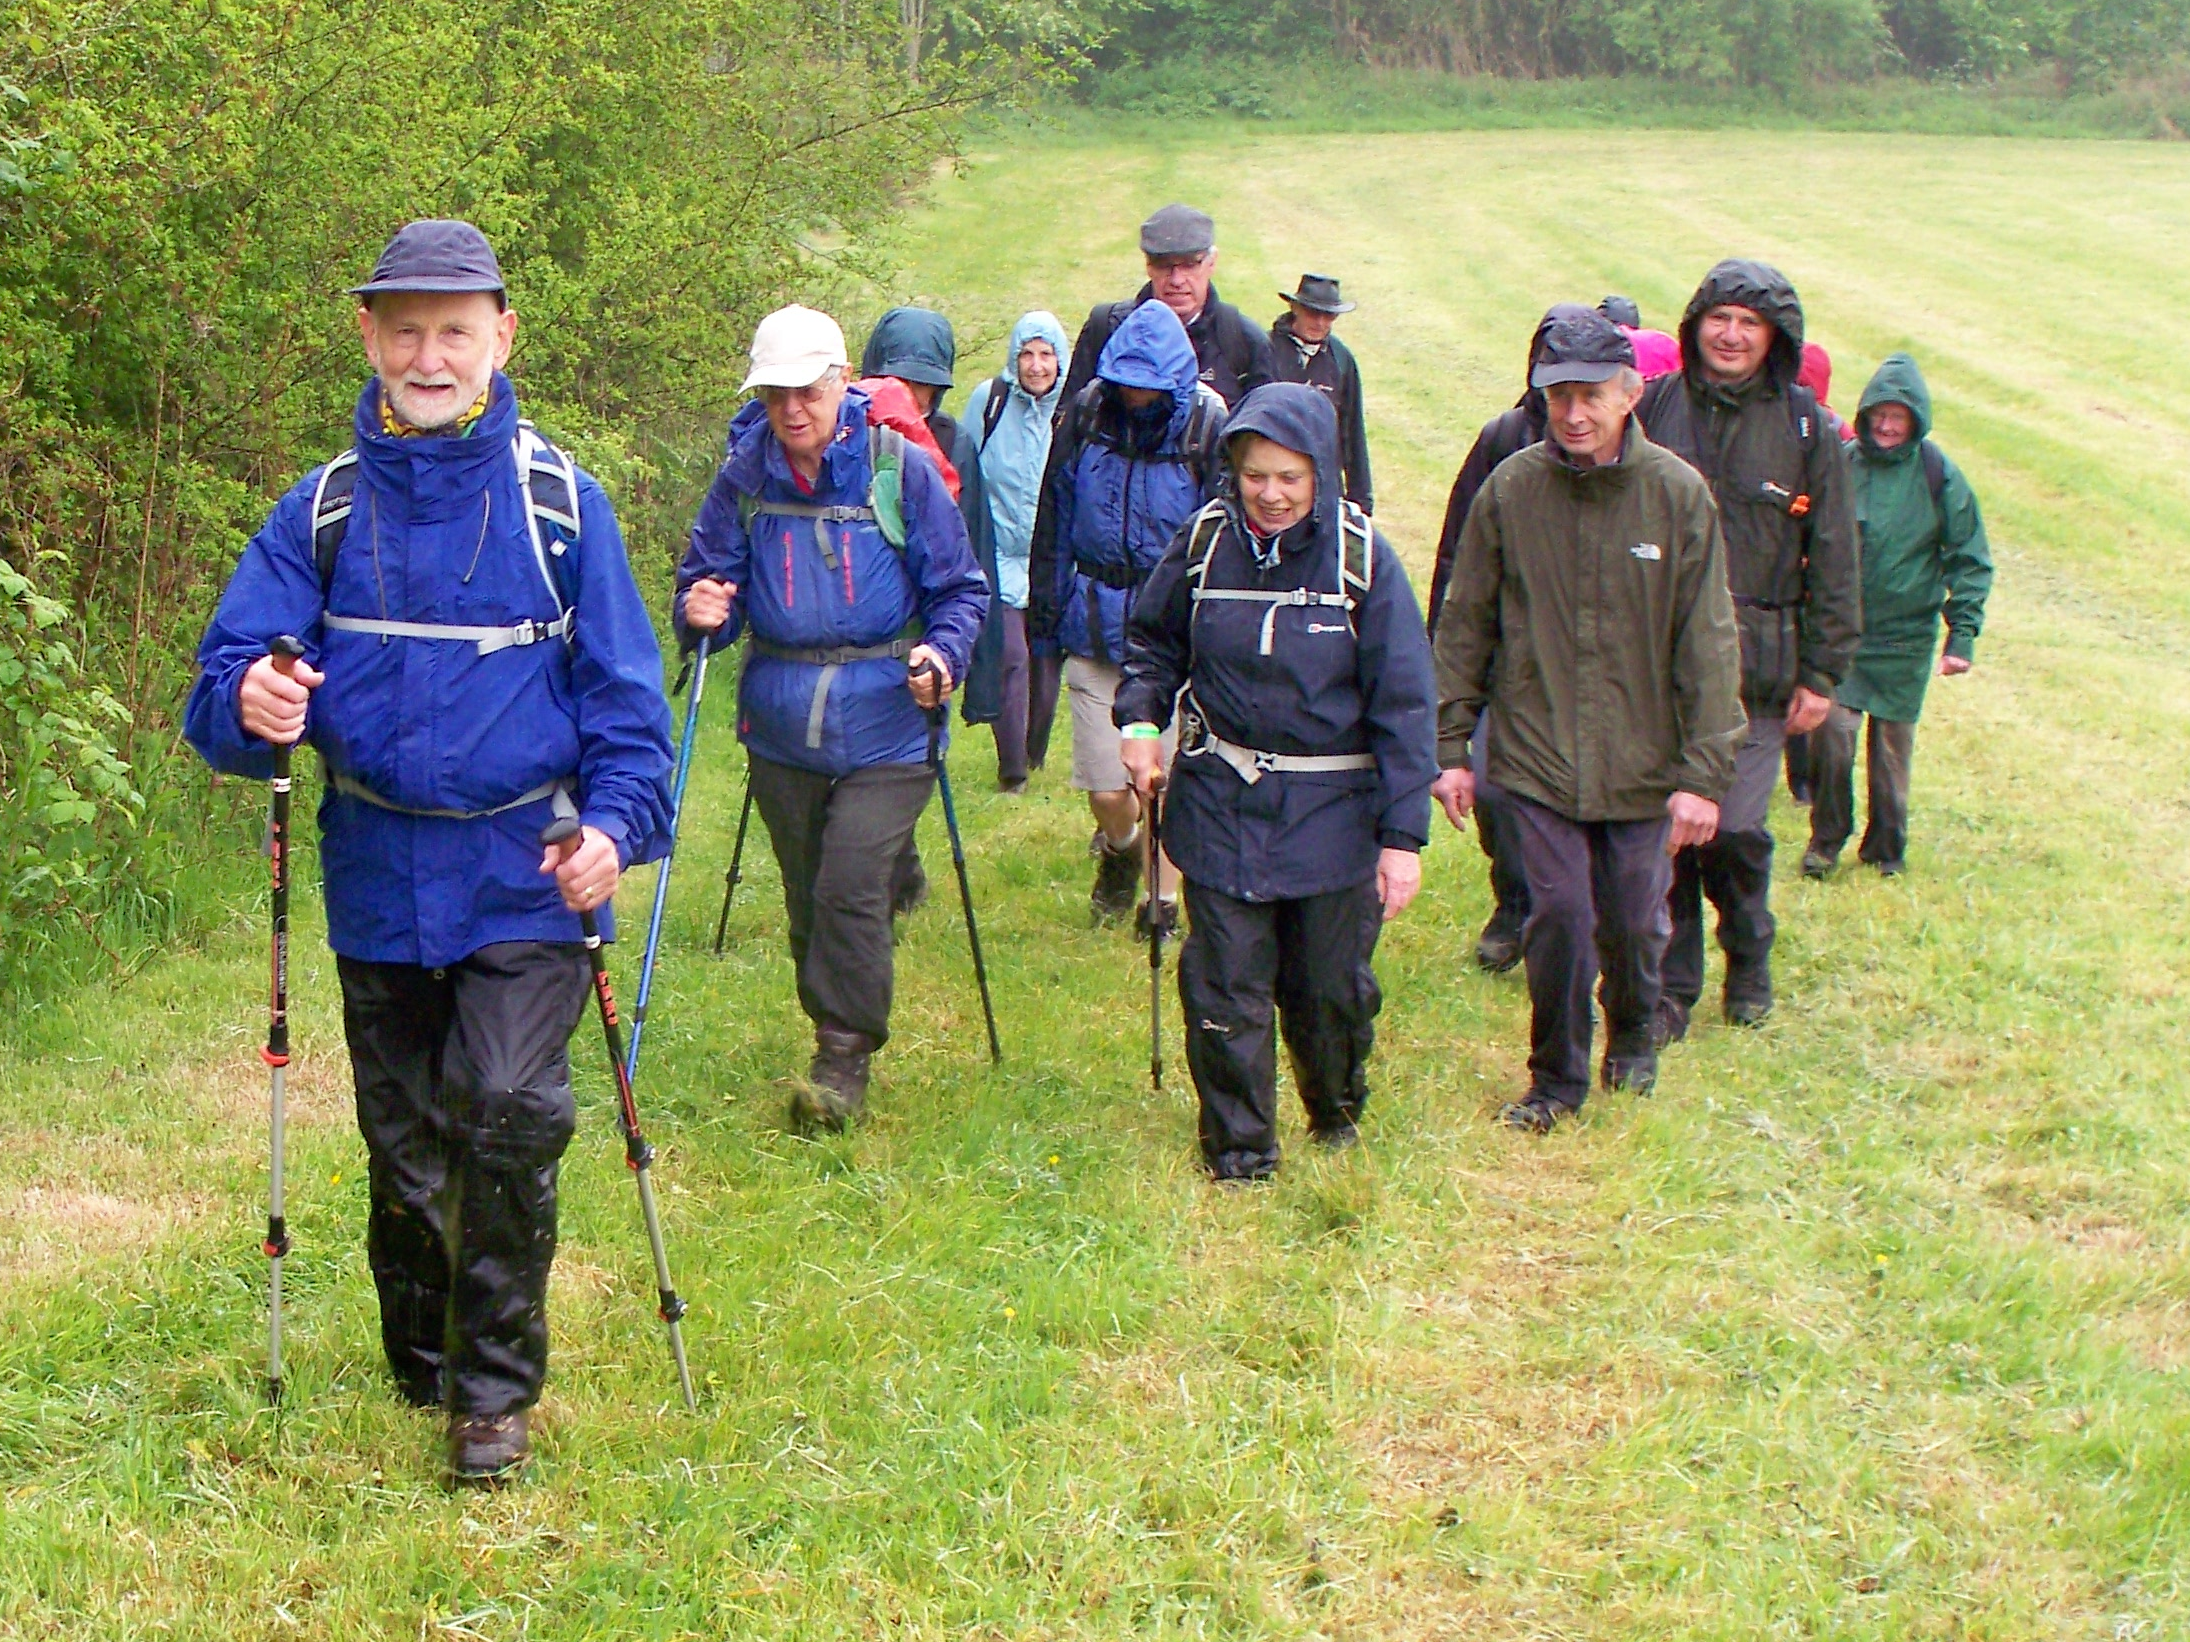 7th Whitchurch Shropshire Walking Festival